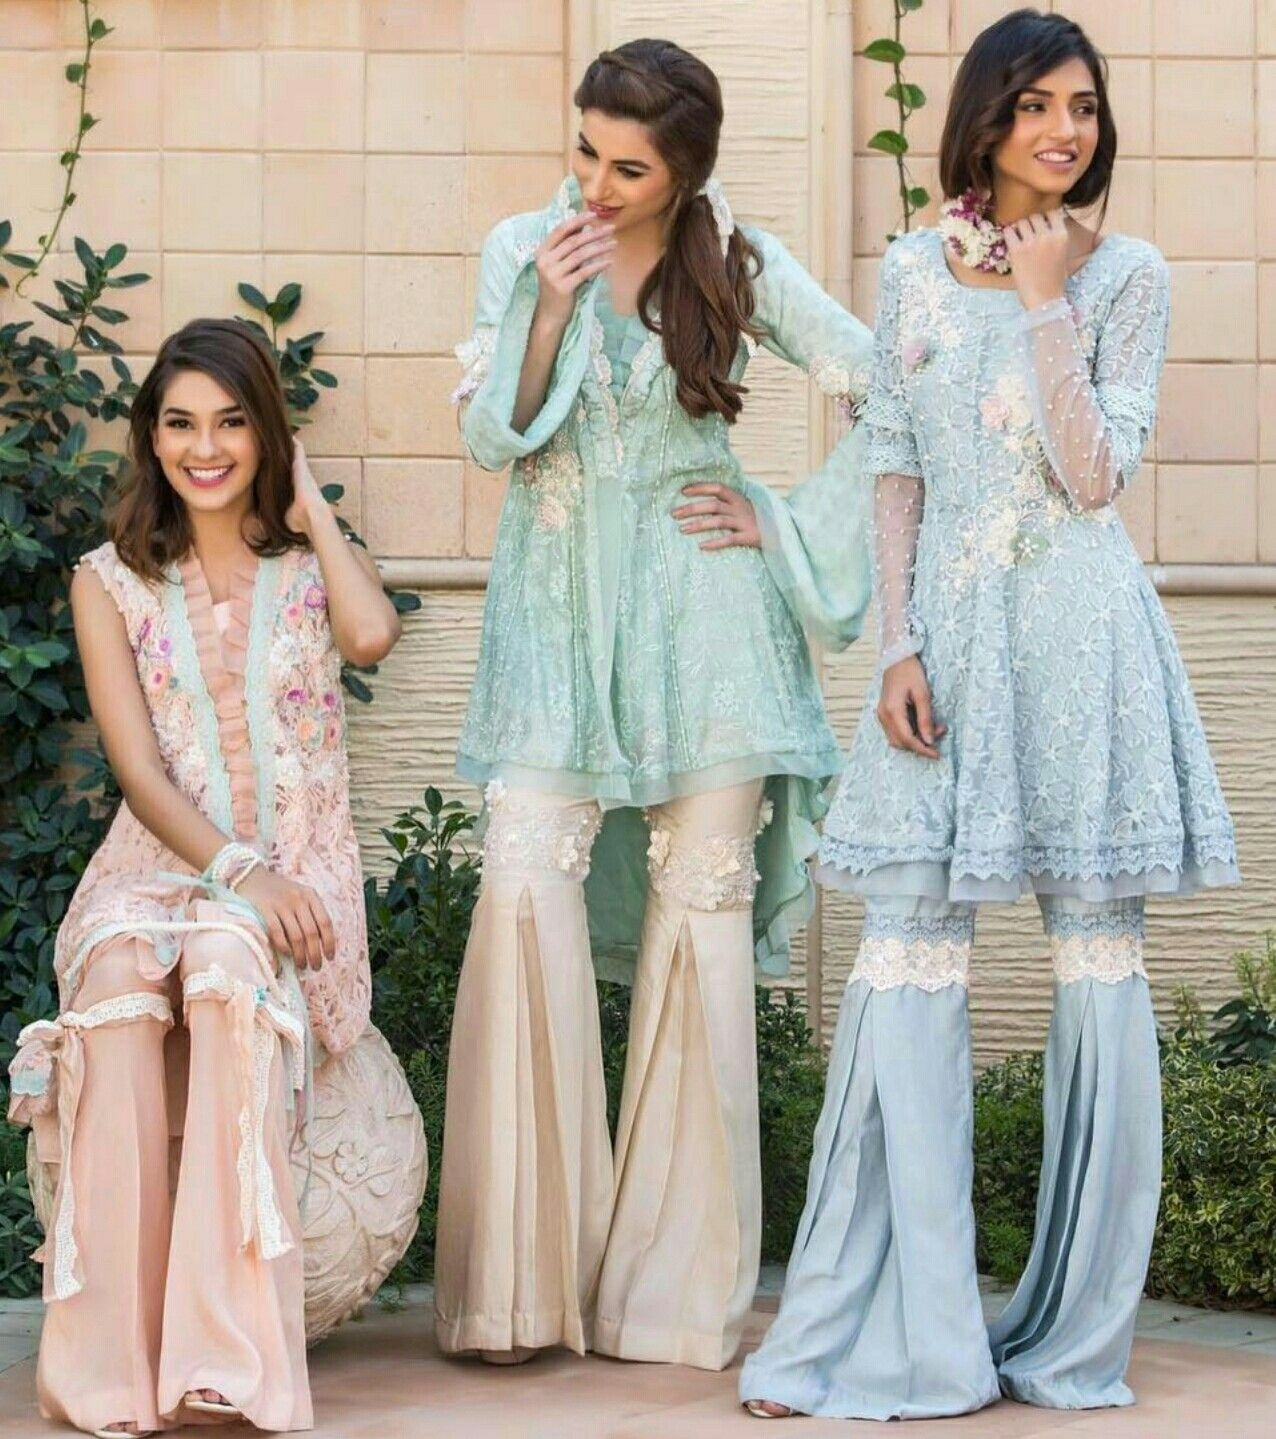 Pin by Zainab Chauhan on Clothes!!!! | Pinterest | Summer parties ...